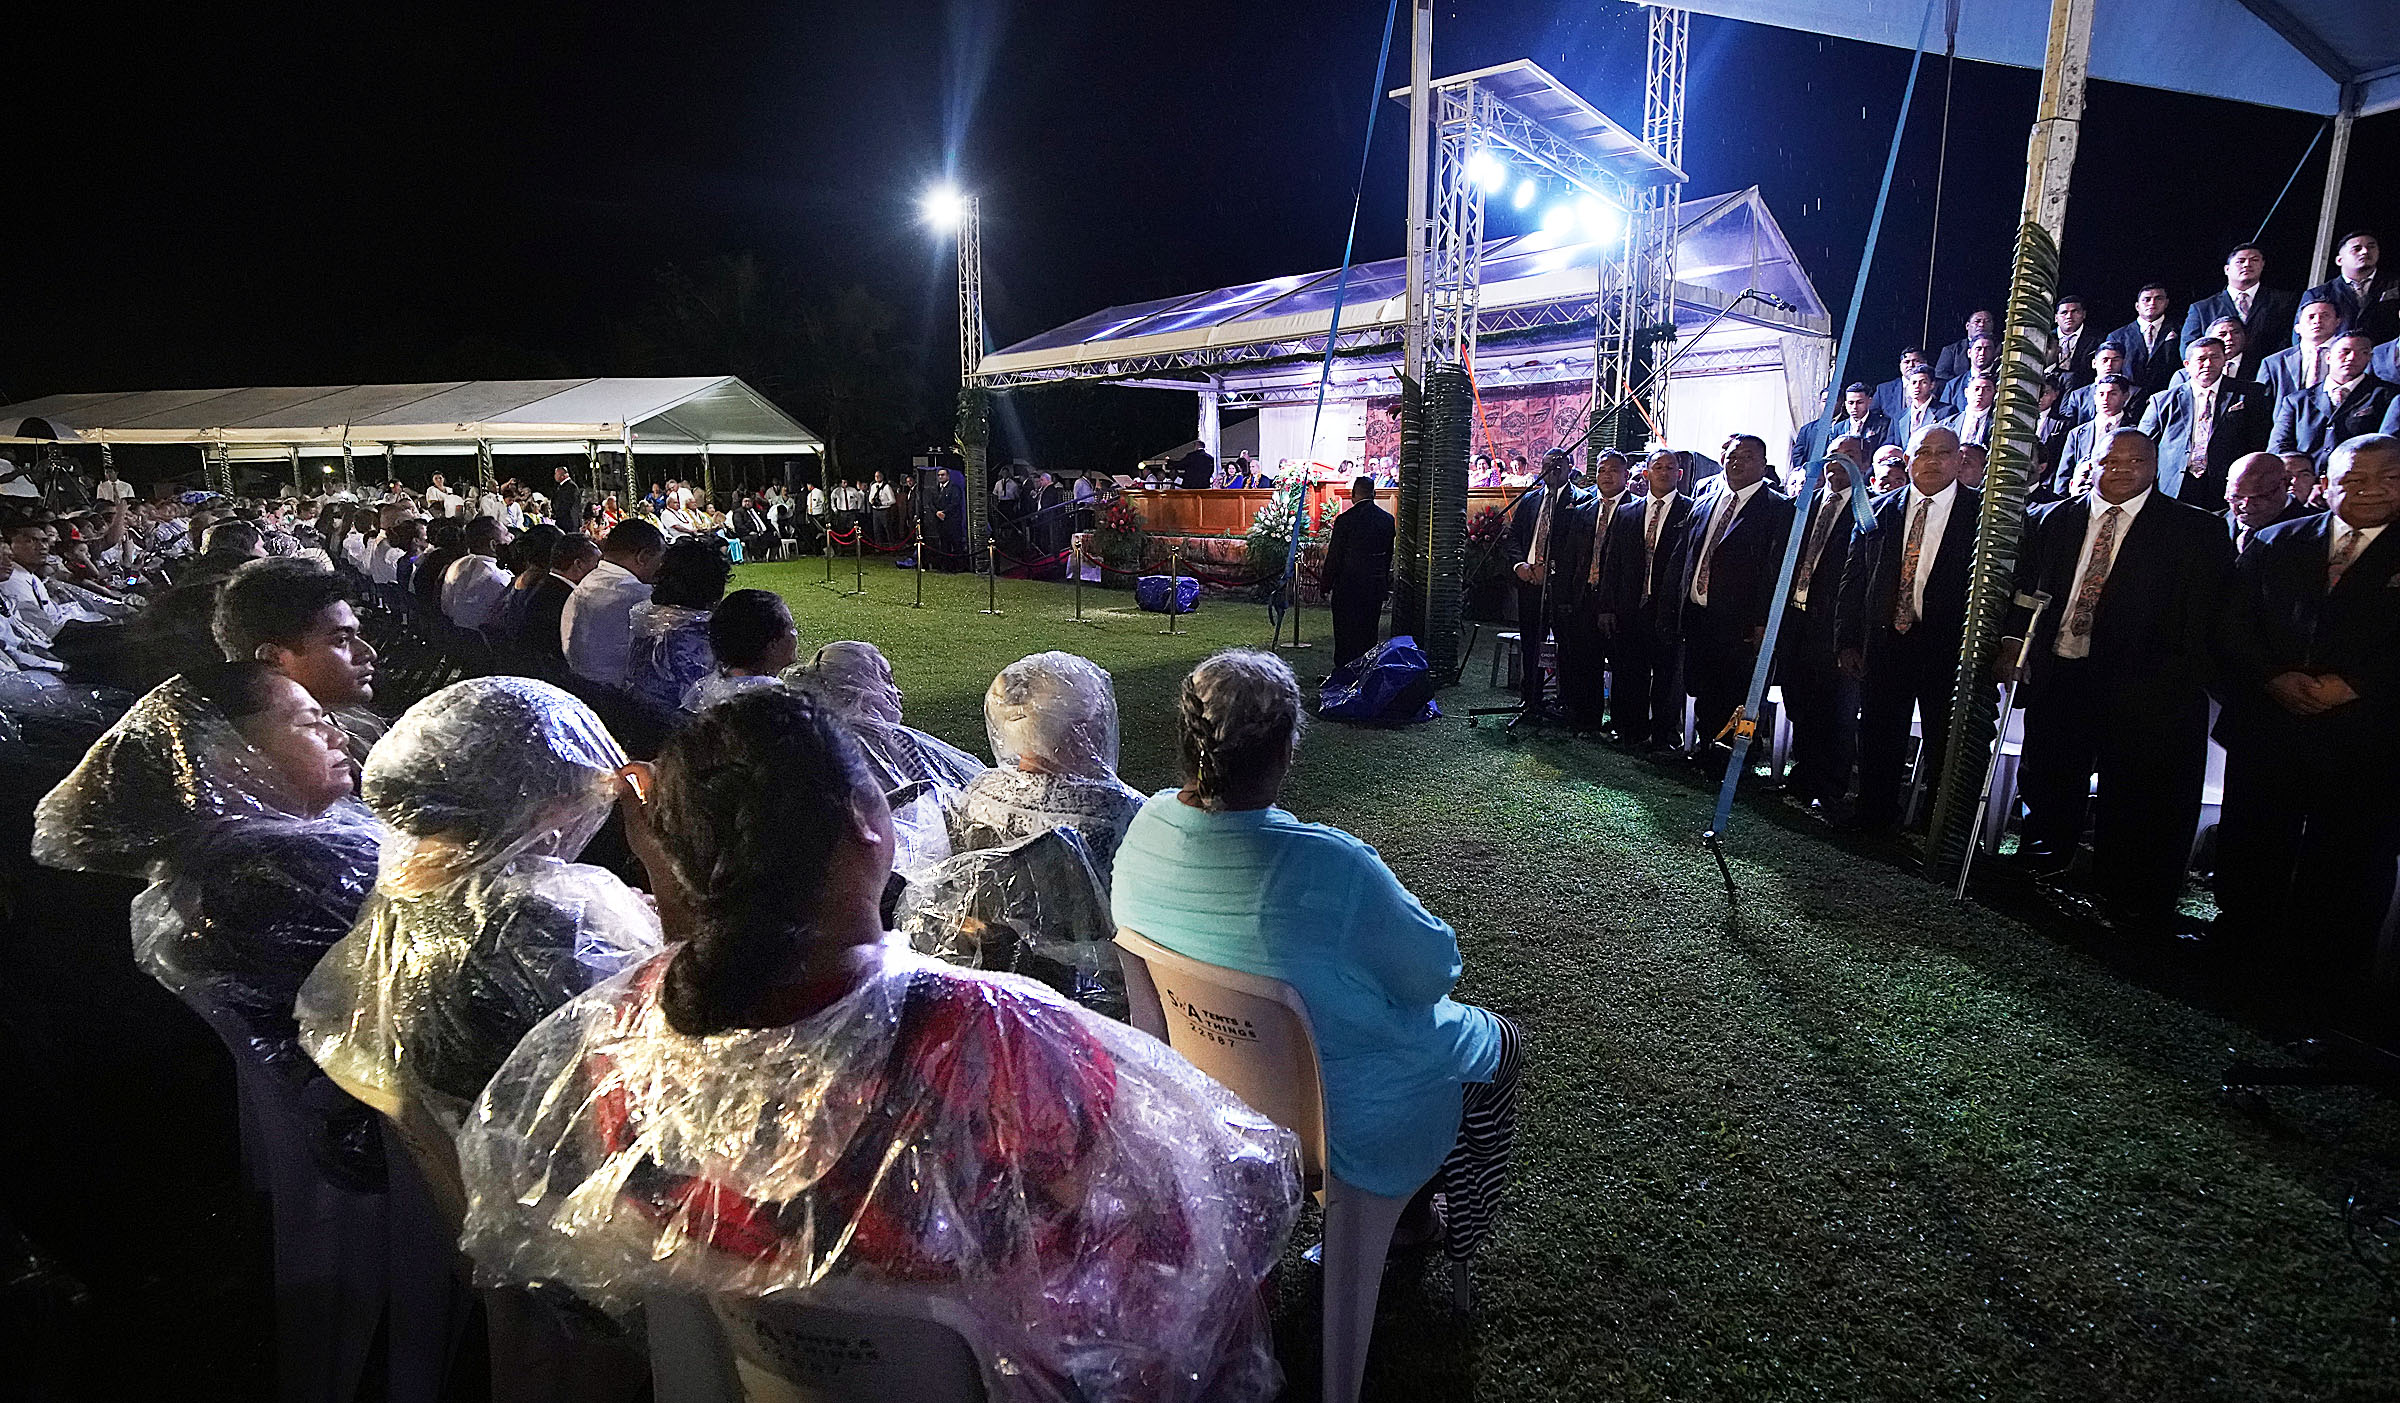 Many of those in attendance wear ponchos in the rain as the Apia Samoa Central Stake Choir sings during a devotional with President Russell M. Nelson of The Church of Jesus Christ of Latter-day Saints in Apia, Samoa, on Saturday, May 18, 2019.